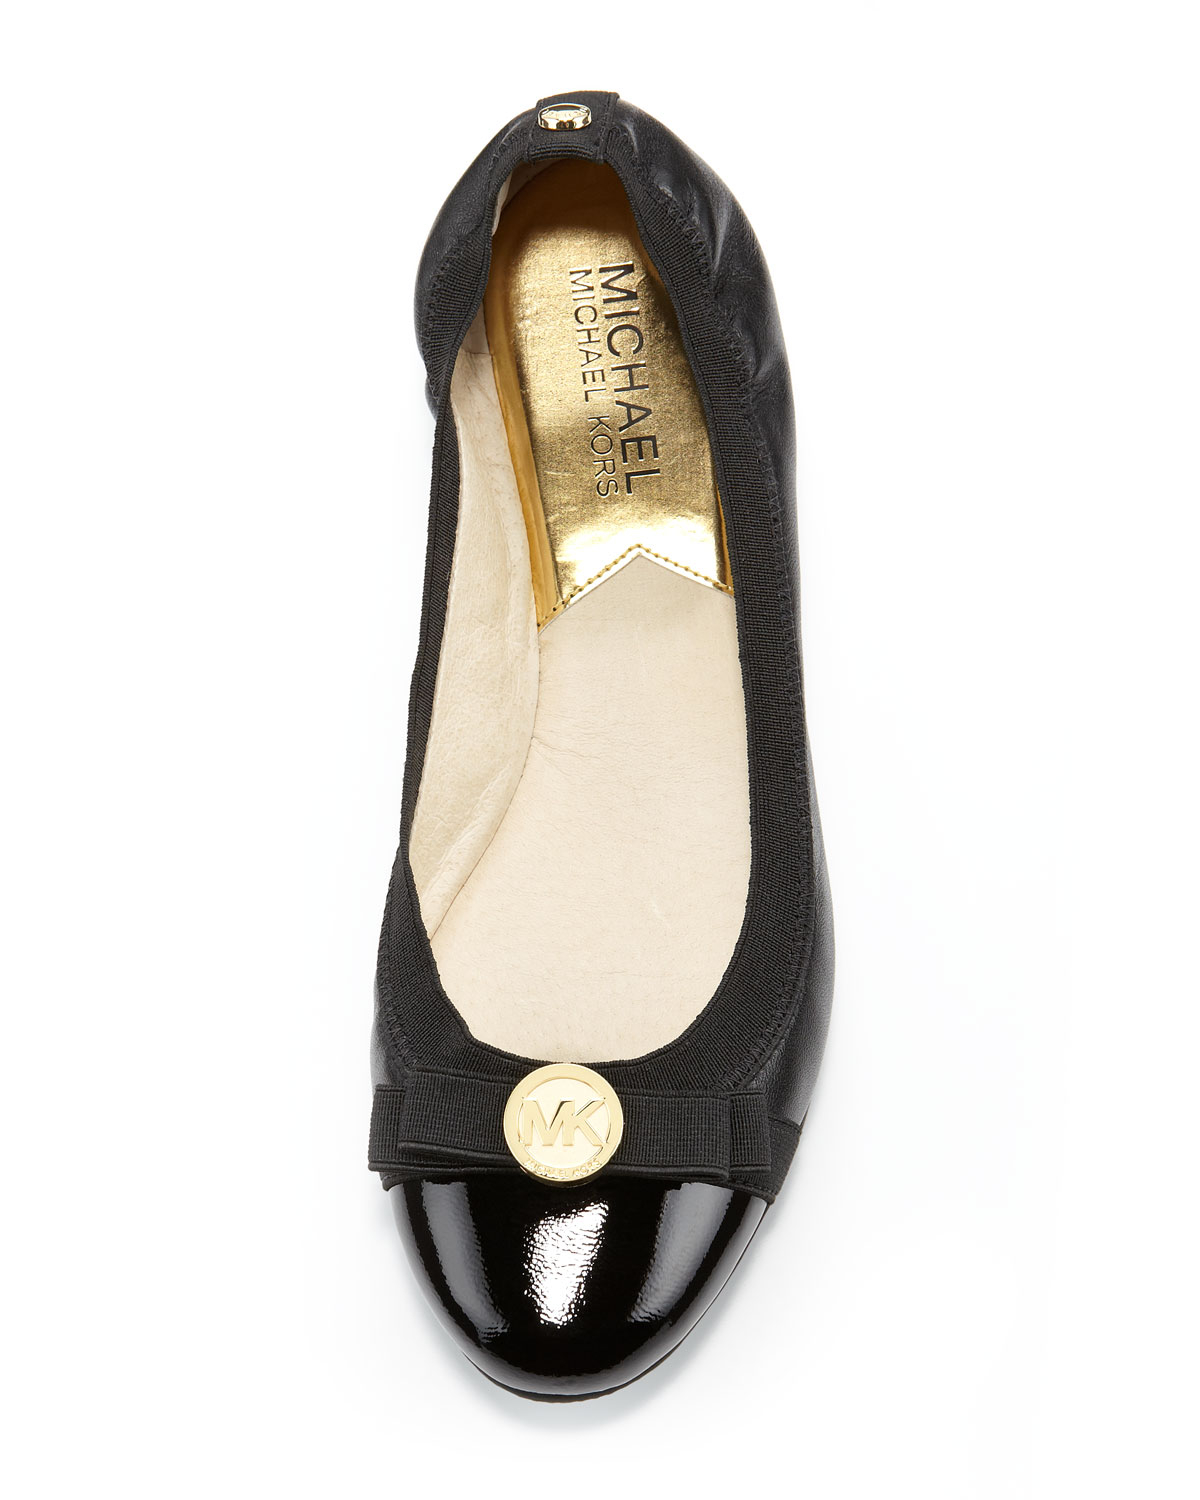 michael kors michael dixie captoe ballet flat in black lyst. Black Bedroom Furniture Sets. Home Design Ideas